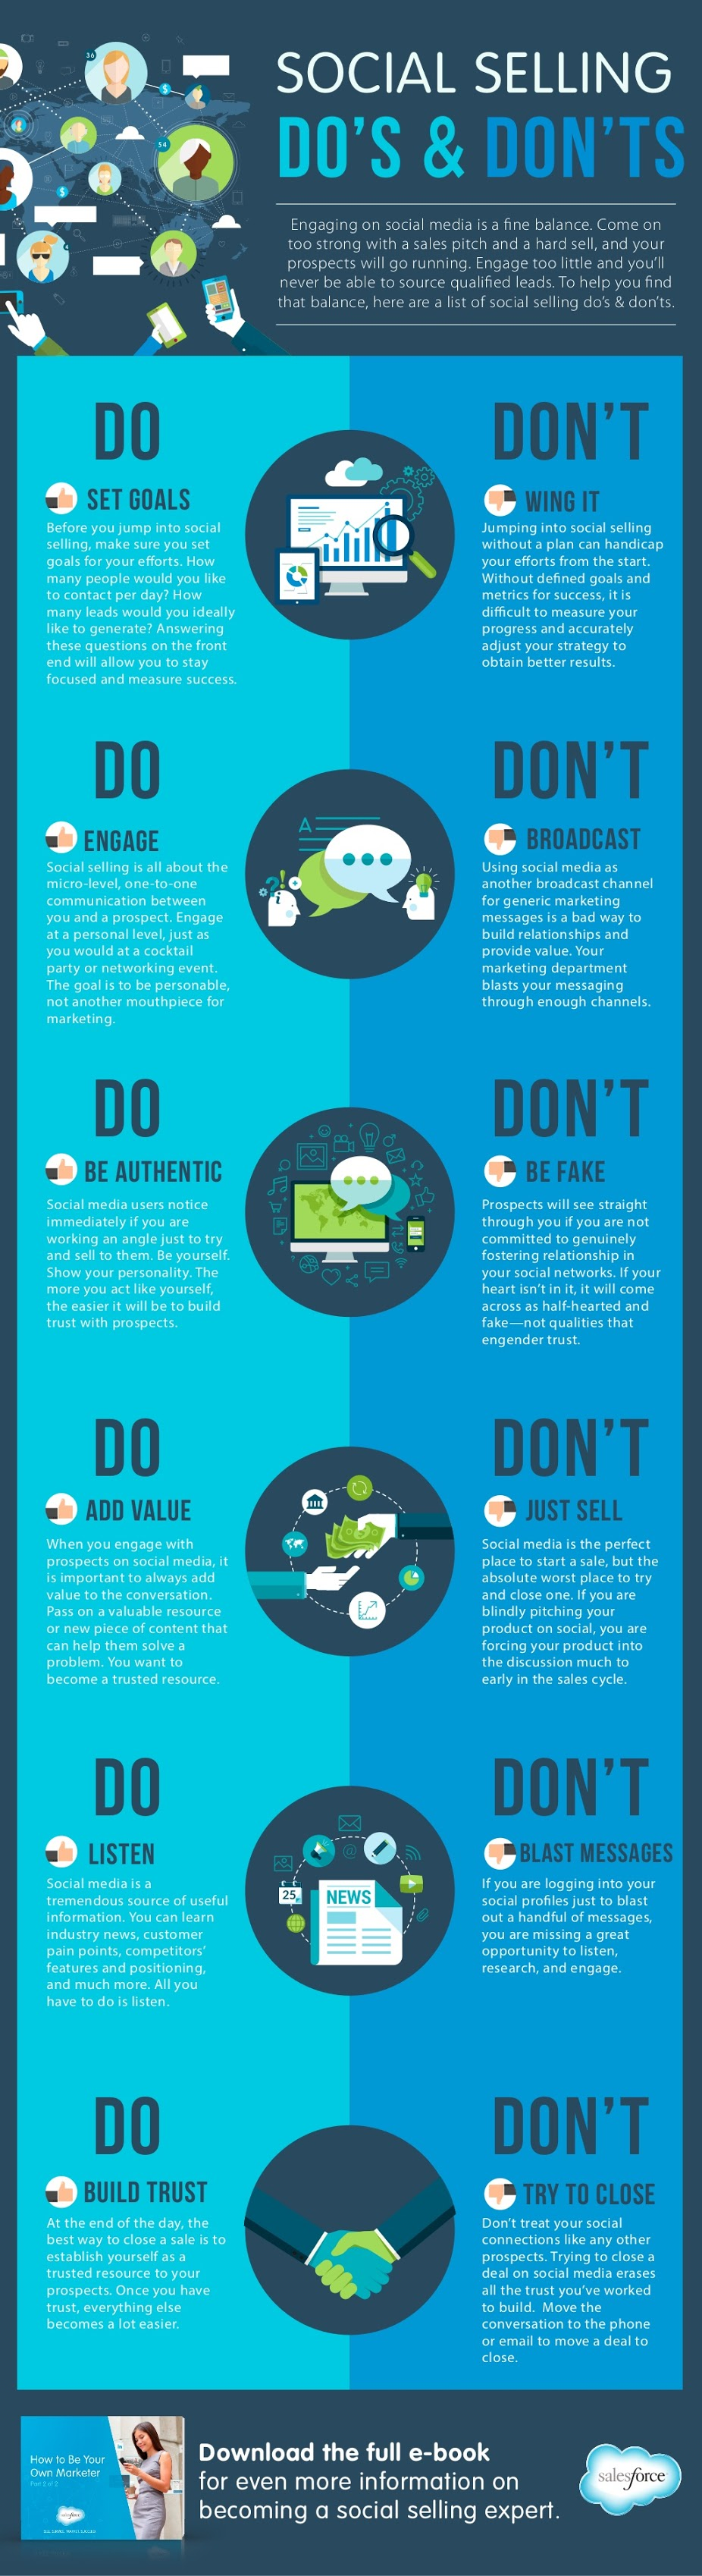 12 Do's And Don'ts Of Social Selling [Infographic]